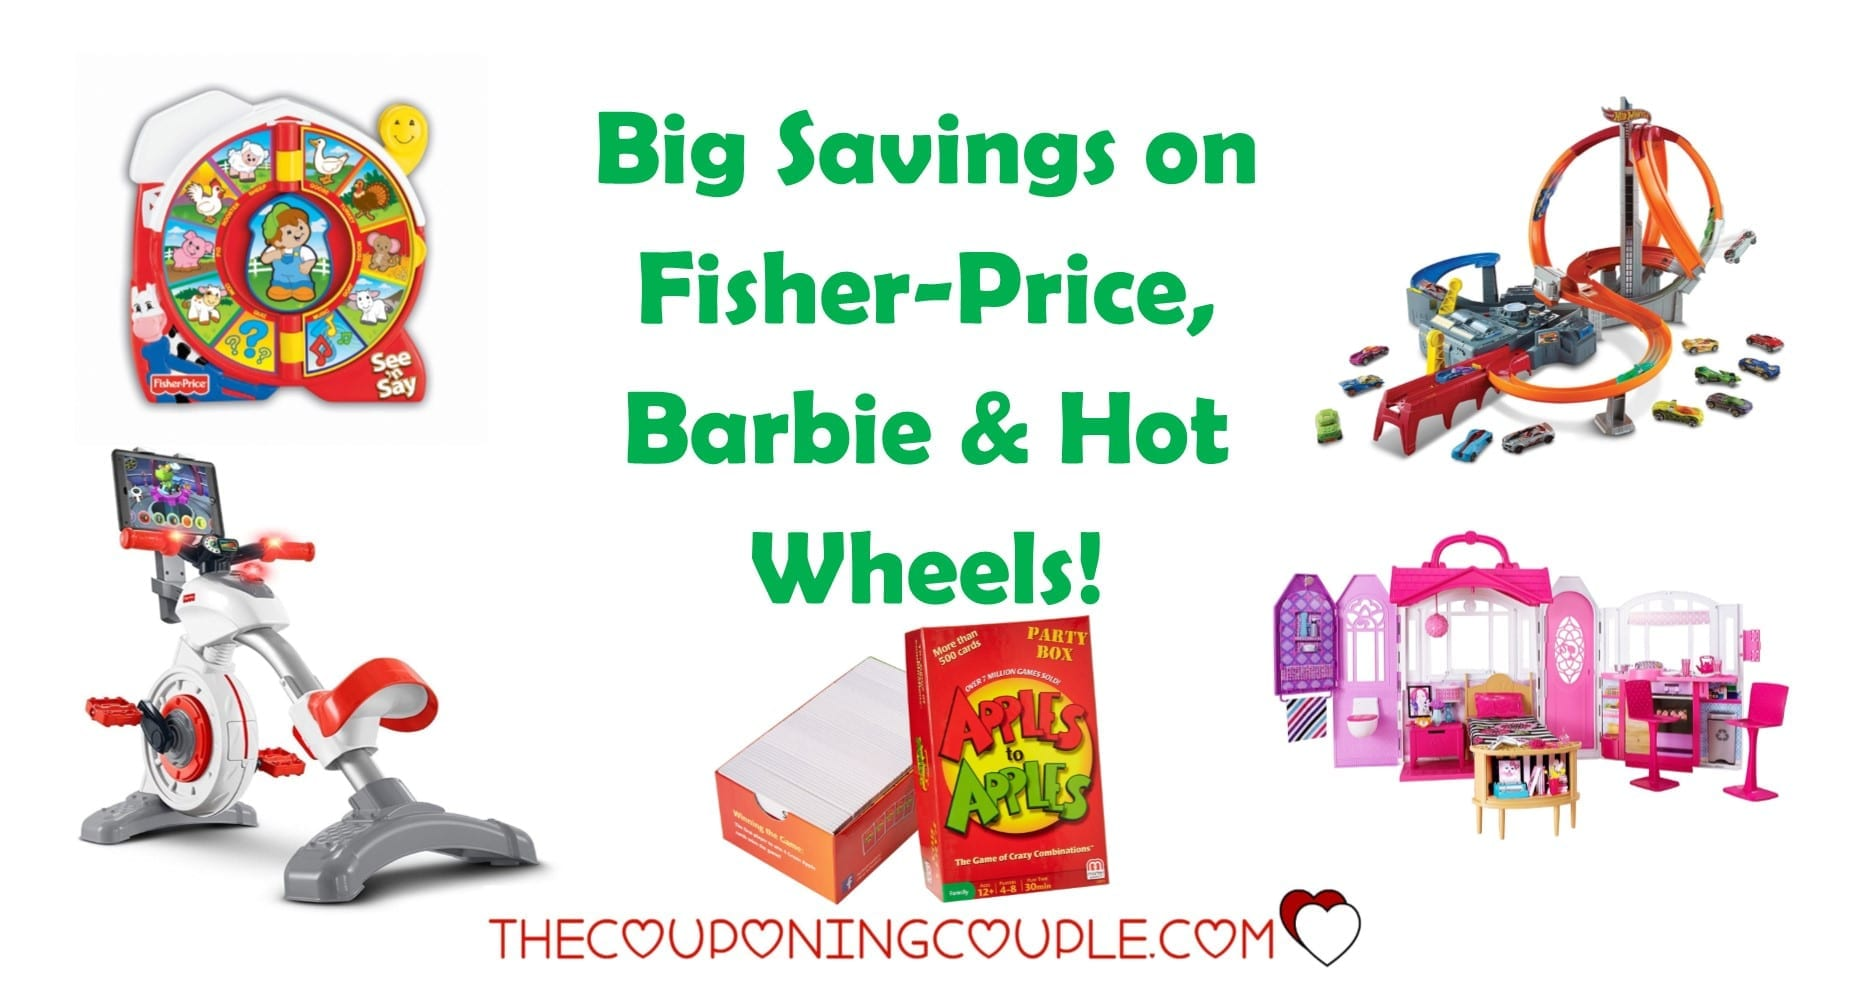 Fisher Price Kids Toys, Barbie and Hot Wheels Big Savings, up to 40% off!